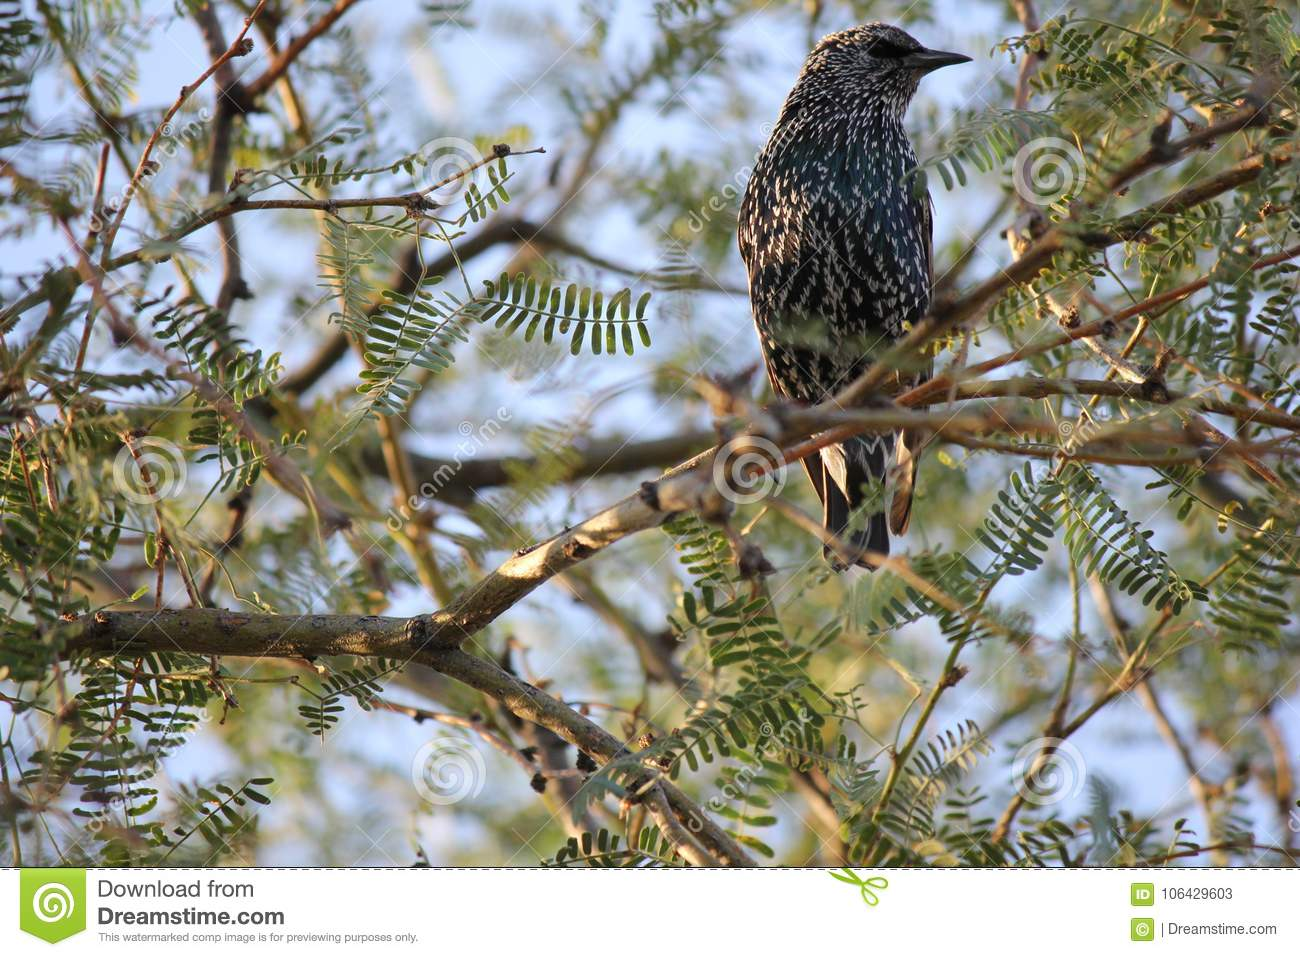 Desert birds tend to be much more abundant where the vegetation is lusher and thus offers more insects, fruit and seeds as food.